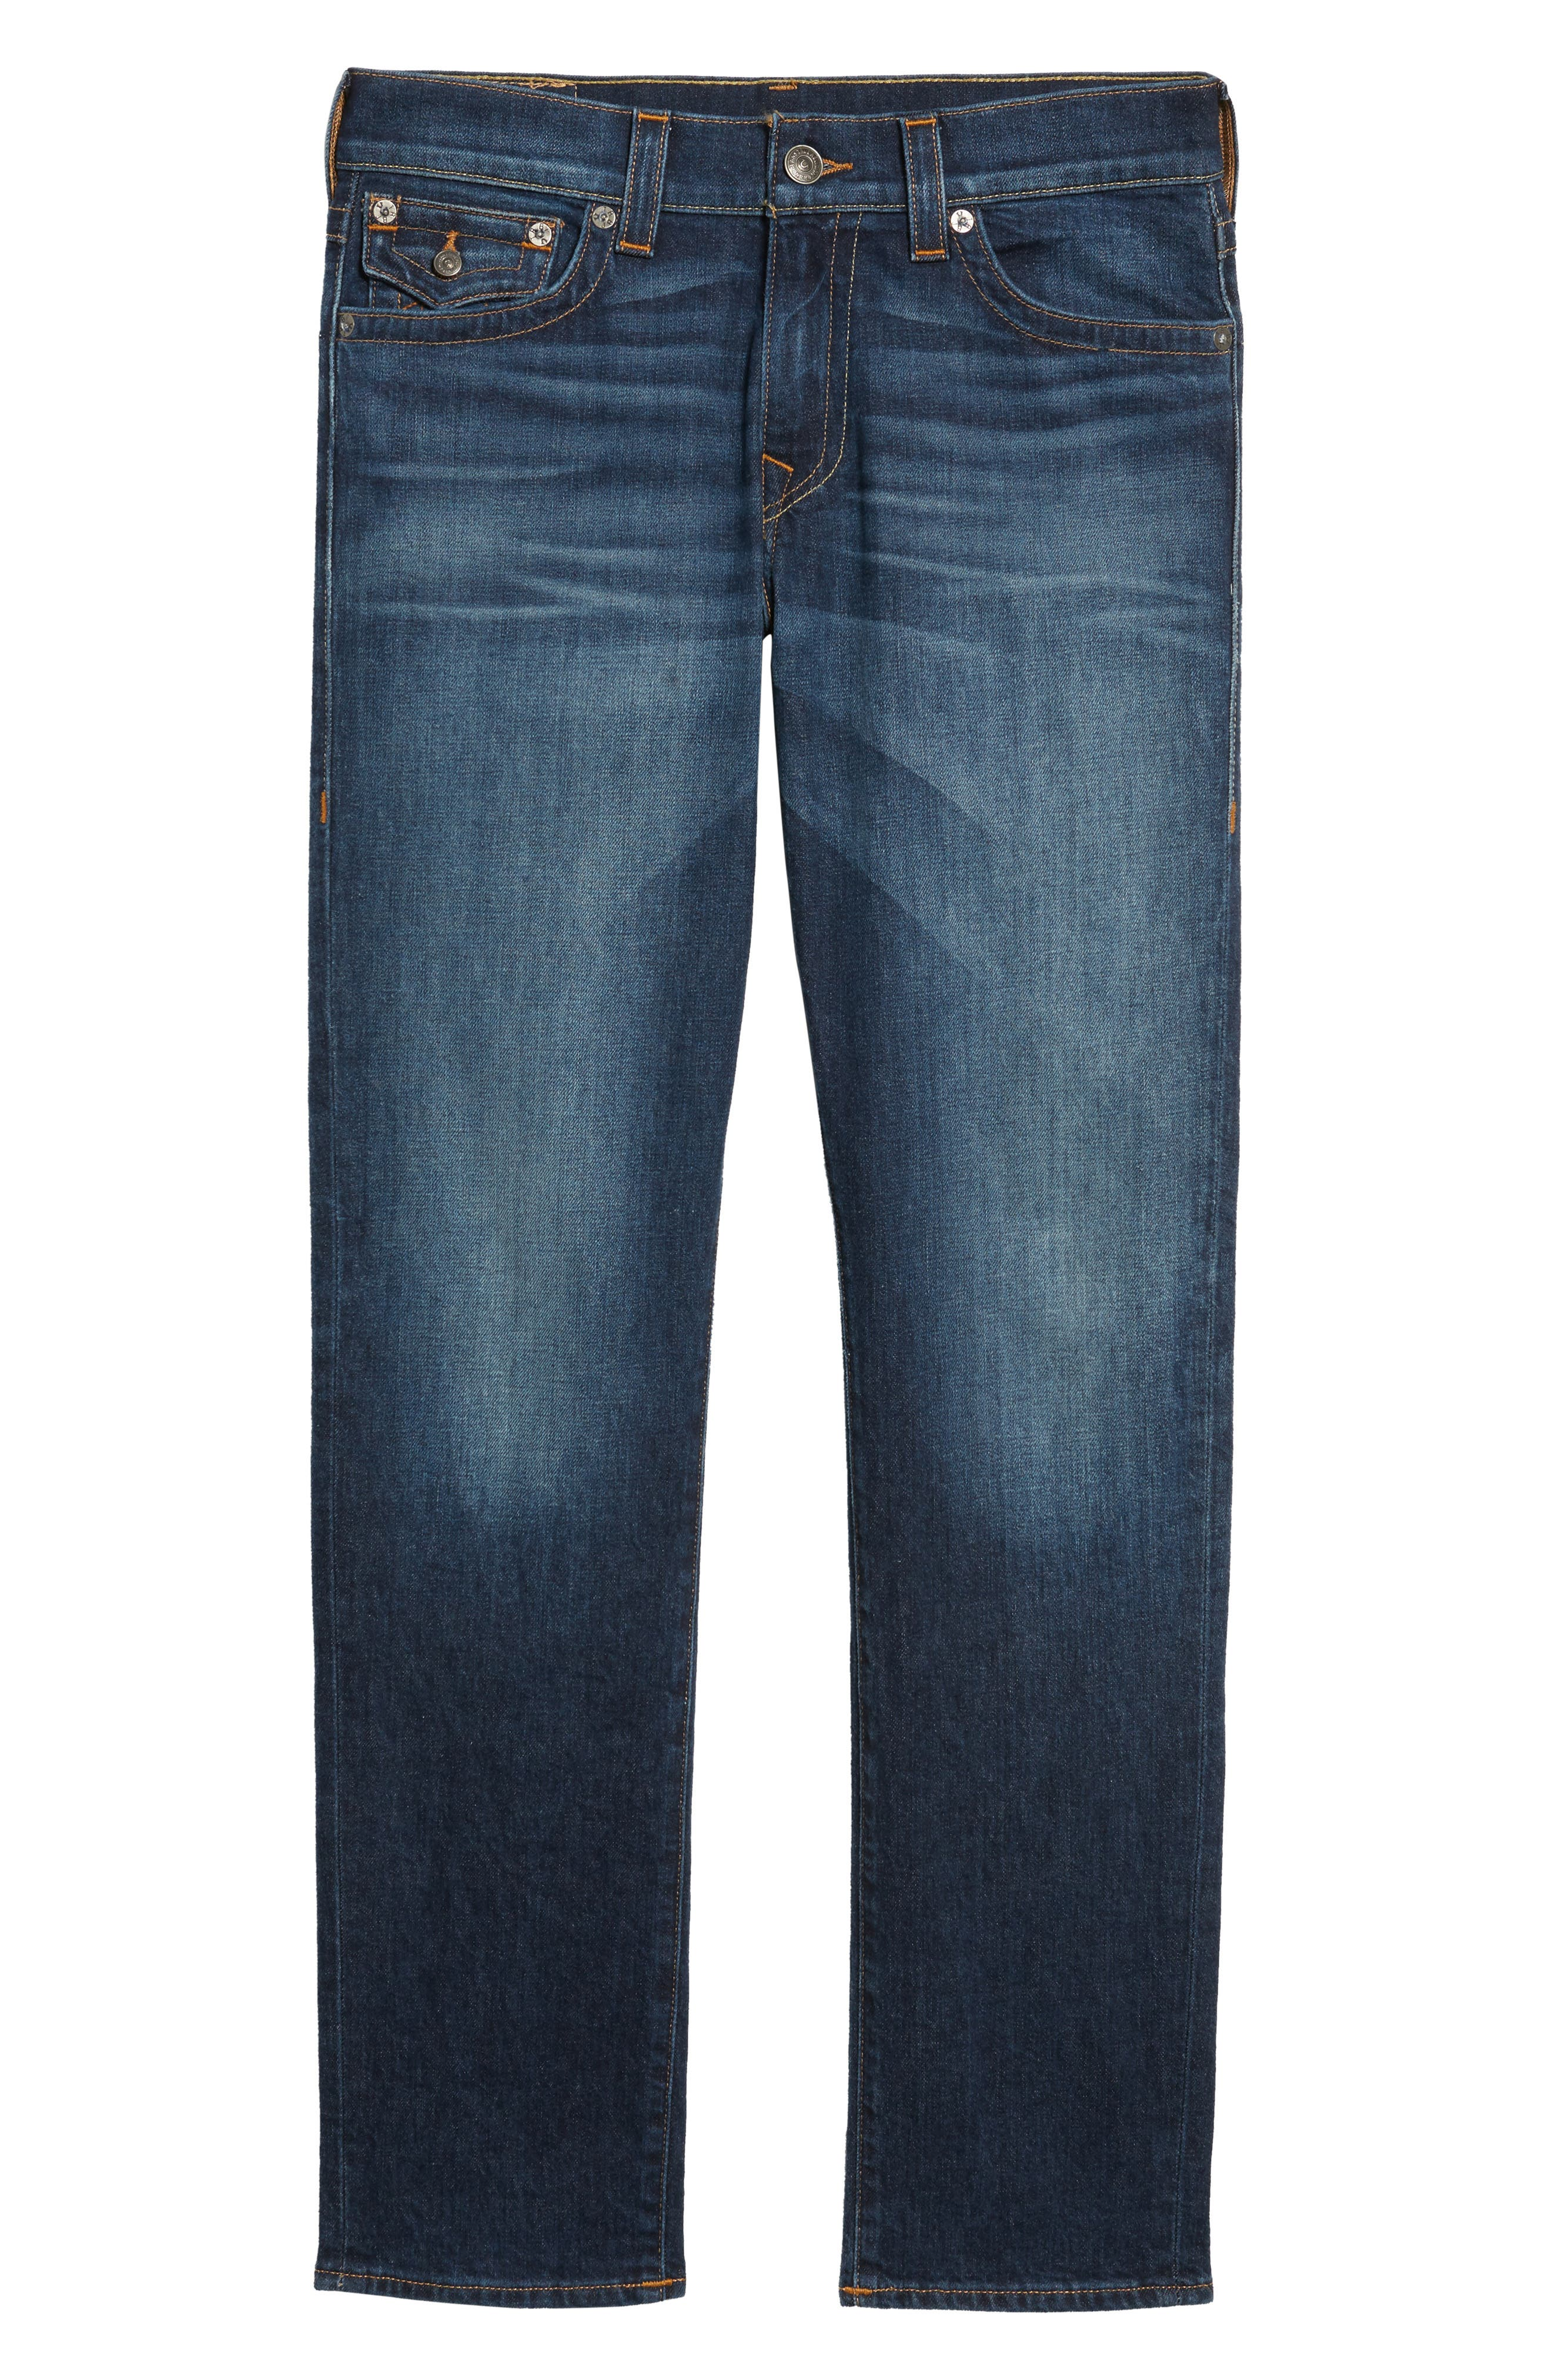 Geno Straight Leg Jeans,                             Alternate thumbnail 6, color,                             BLUE CASCADE